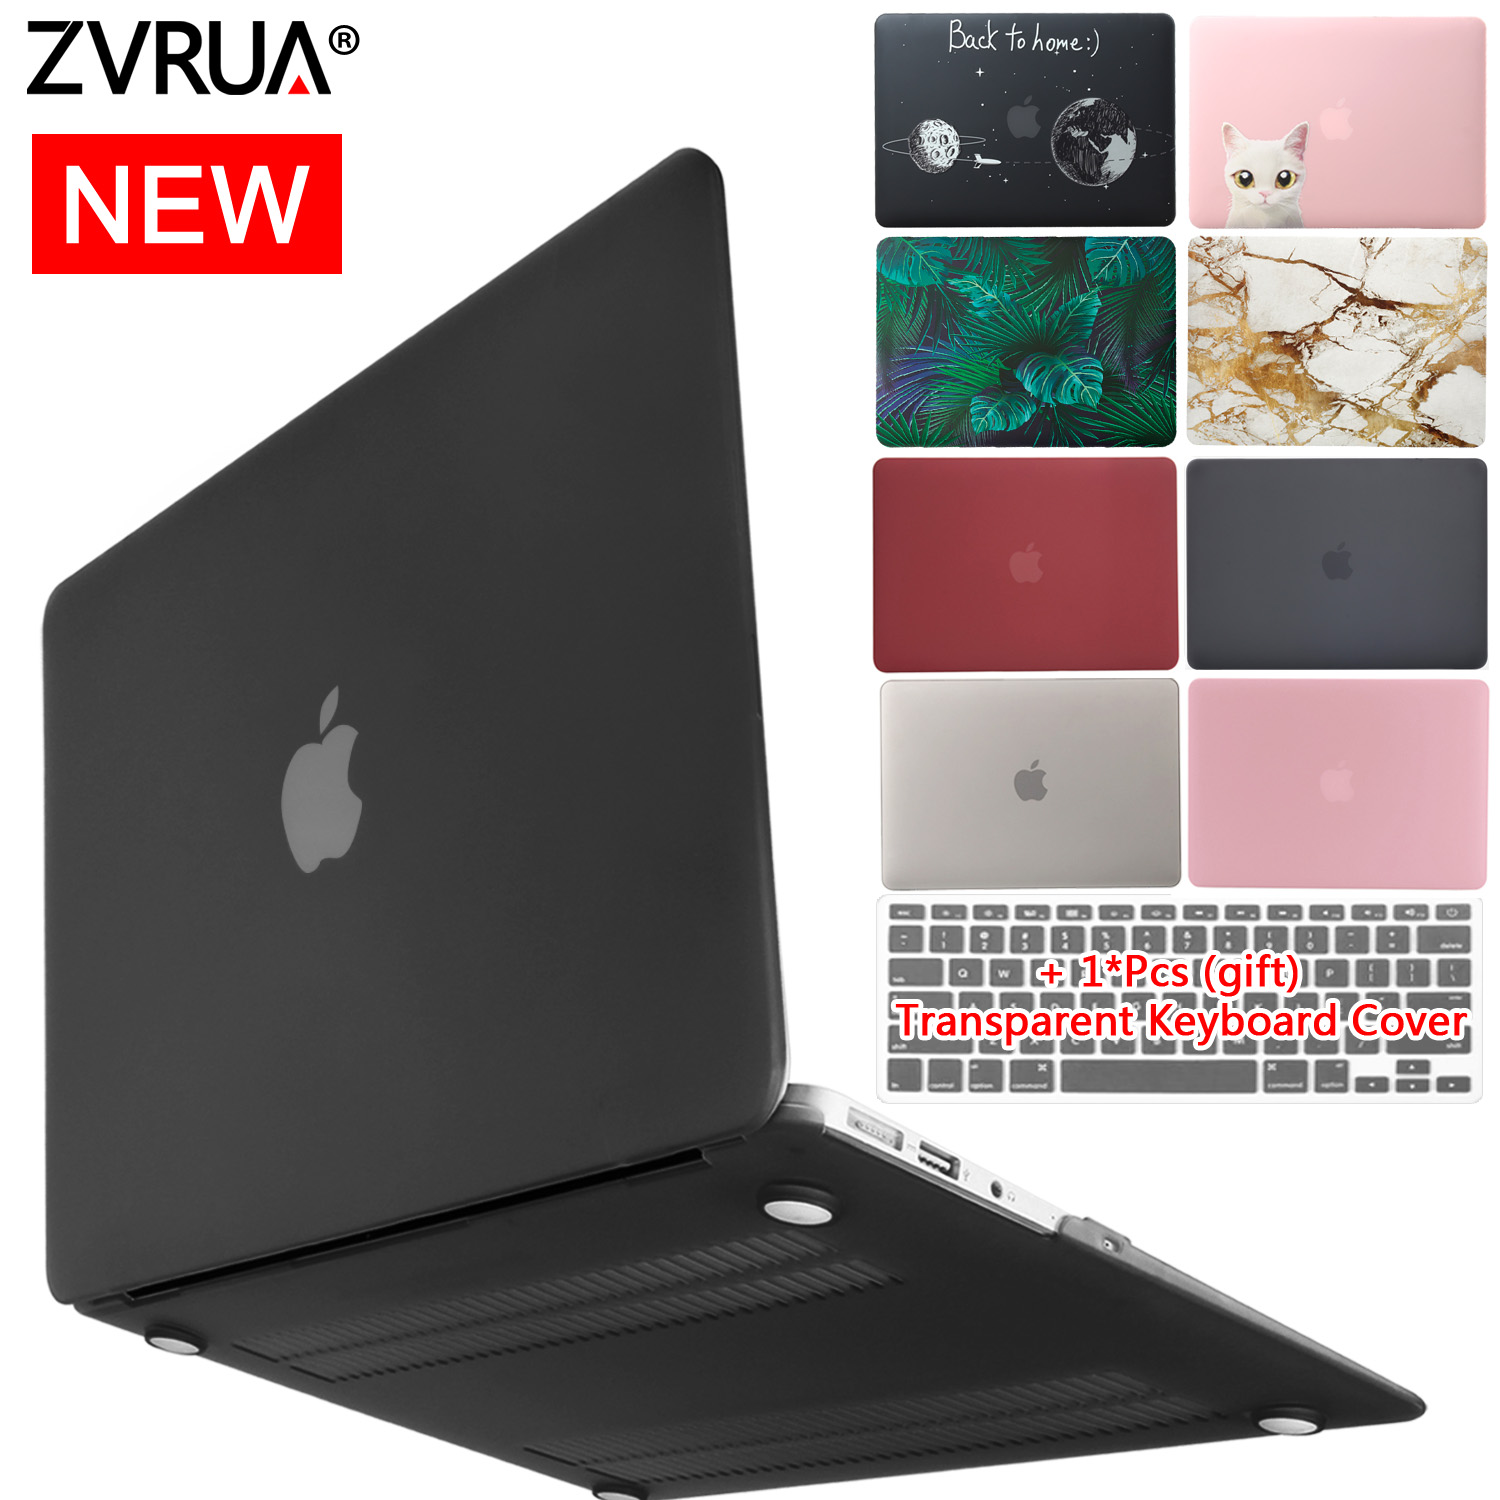 2019 New Laptop Case For Apple MacBook Air Pro Retina 11 12 13 15 Inch For 13.3 A1706 Mac Book Pro With Touch Bar+Keyboard Cover